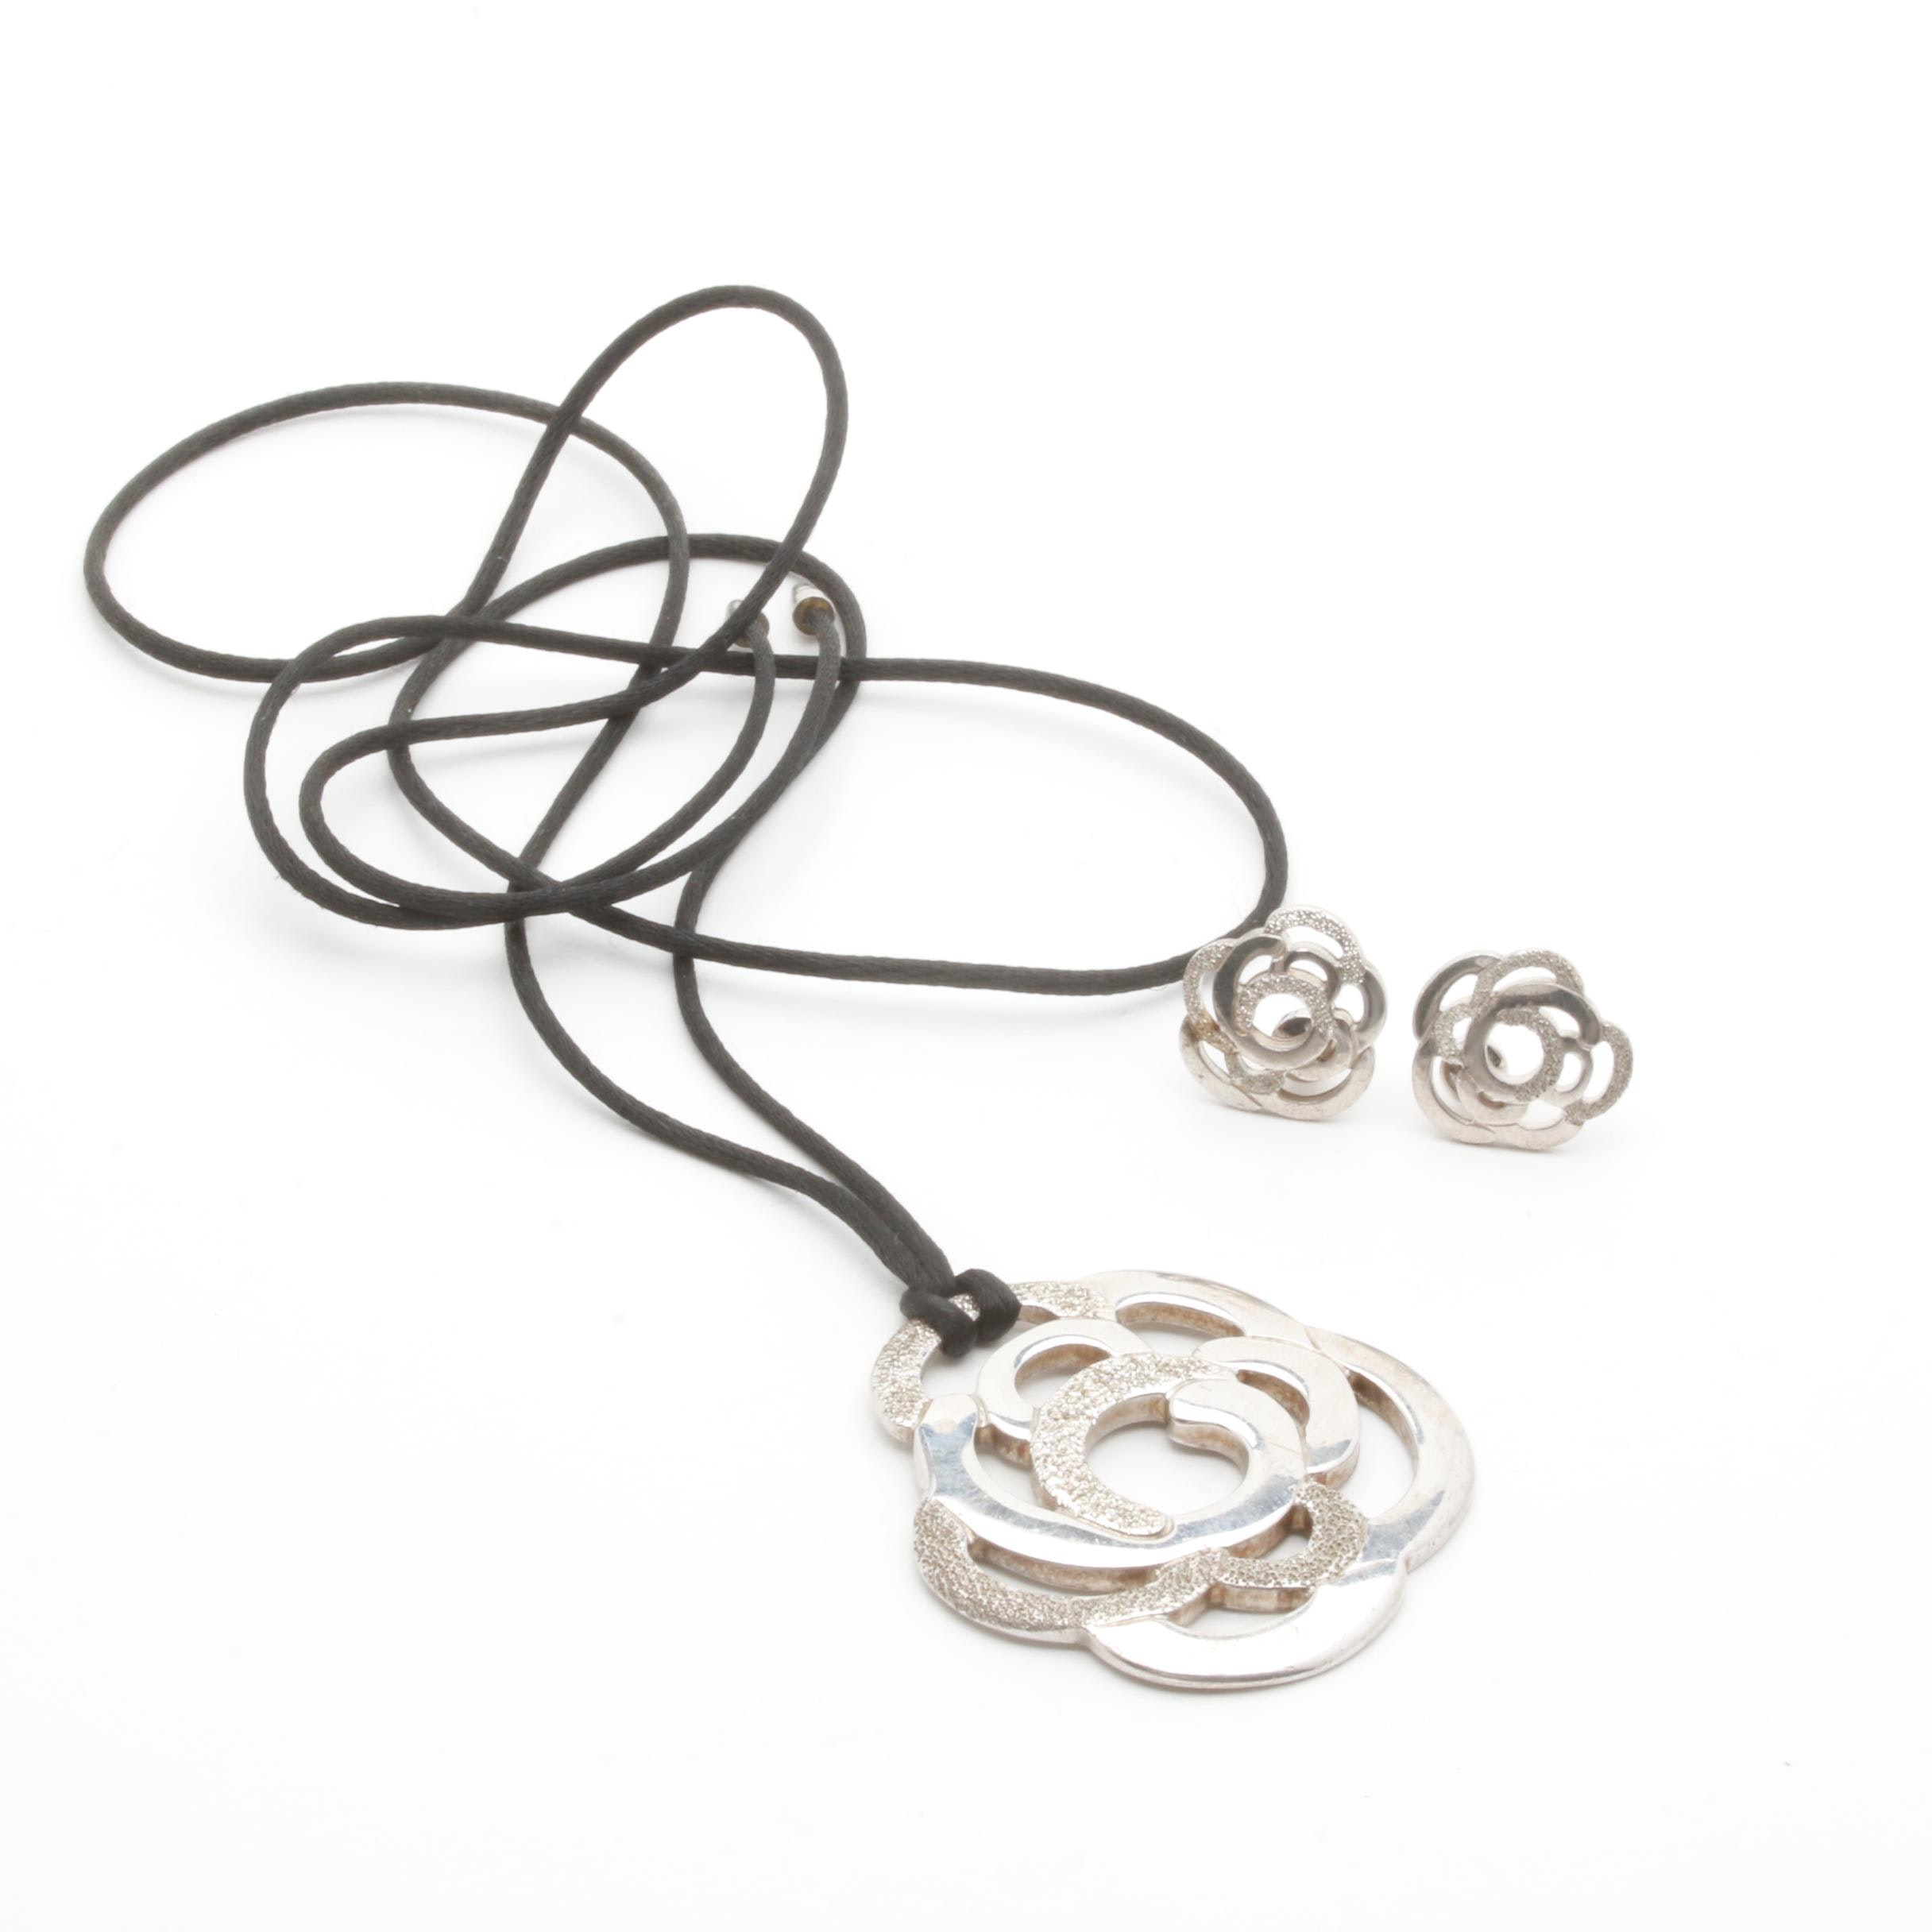 Empirio Armani Sterling Silver Earrings and Necklace